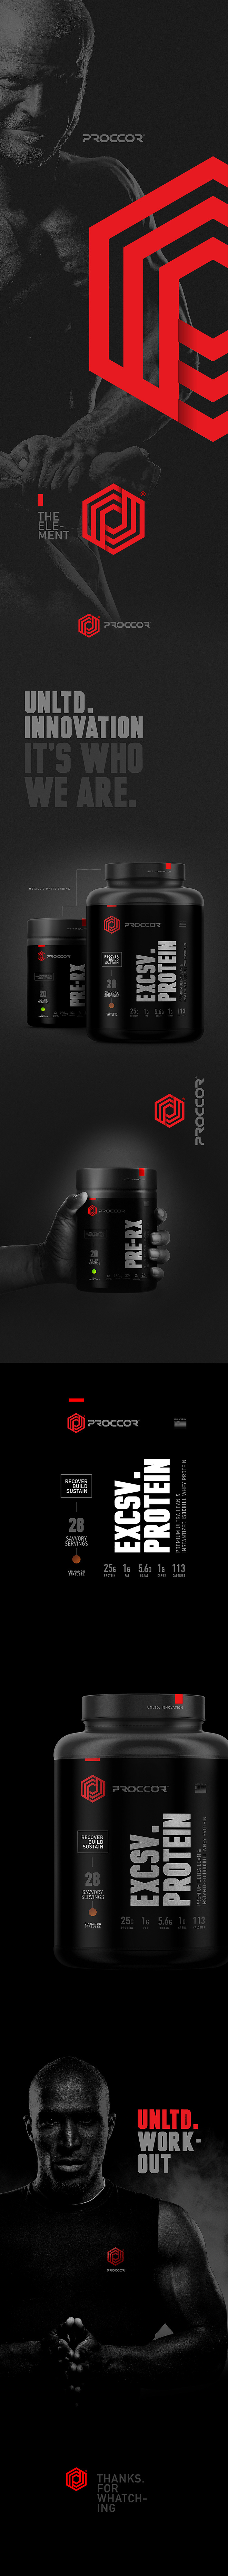 Presentation image showcasing branding elements such as logo design and product design for supplement company Proccor